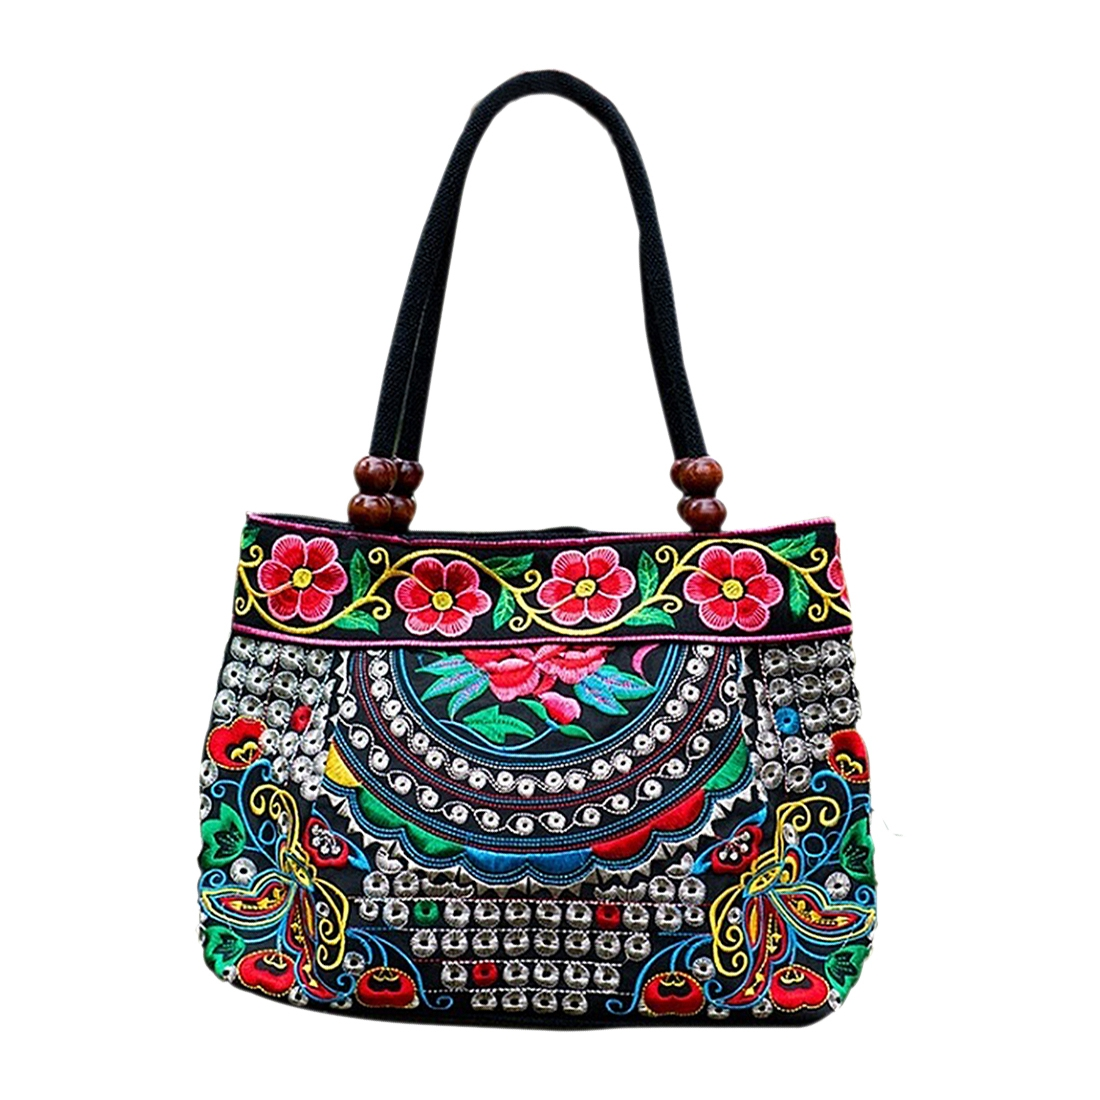 Chinese Style Women Handbag Embroidery Ethnic Summer Fashion Handmade Flowers Ladies Tote Shoulder Bags Cross-body  Butterfly national chinese style bags embroidery flowers handbags ethnic canvas handmade tote women s handbags sac a dos femme